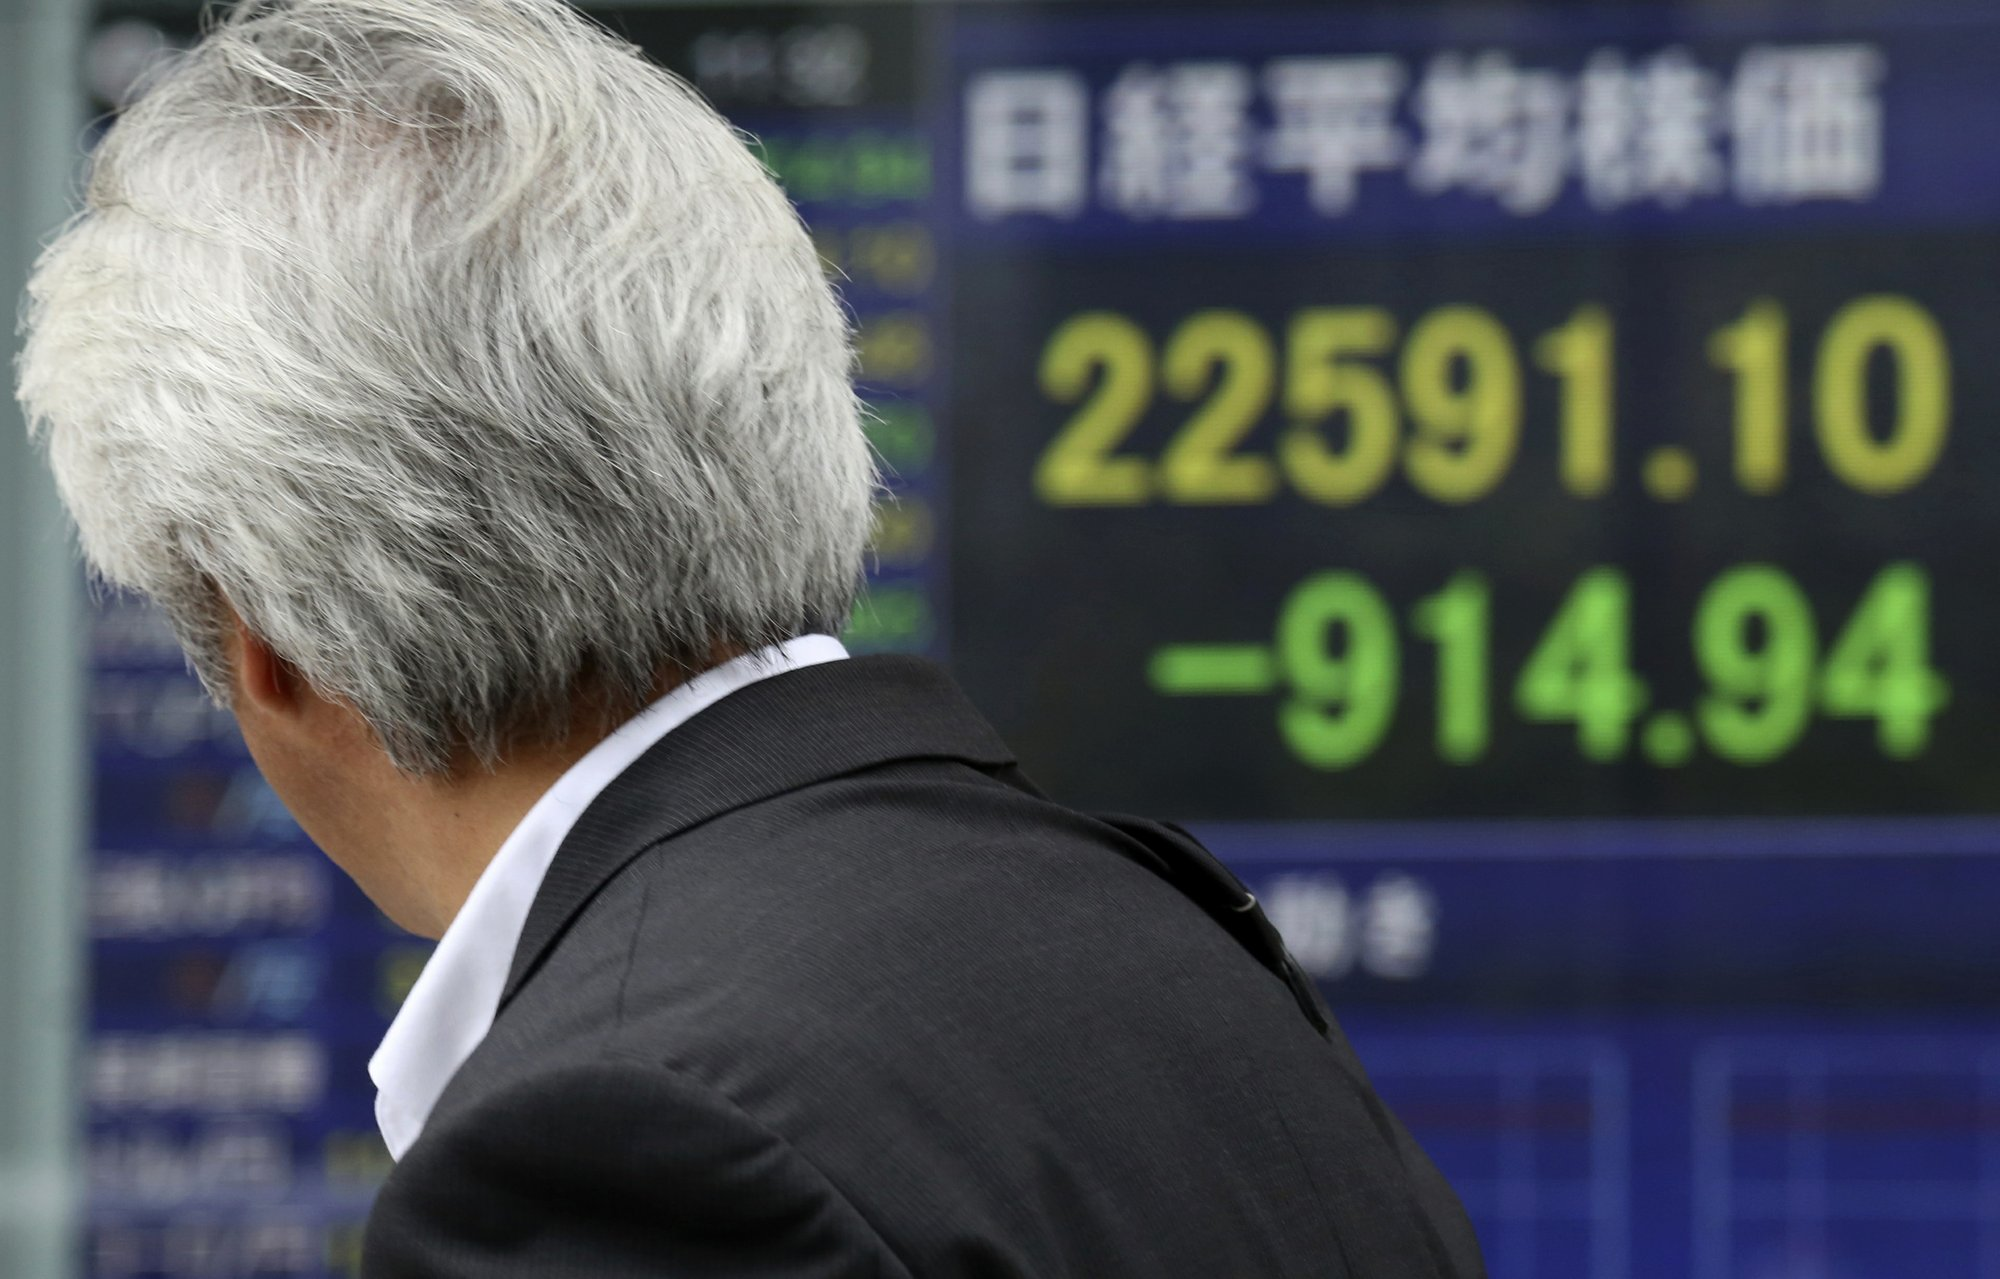 Stock market drop spreads, Wall Street set to fall again